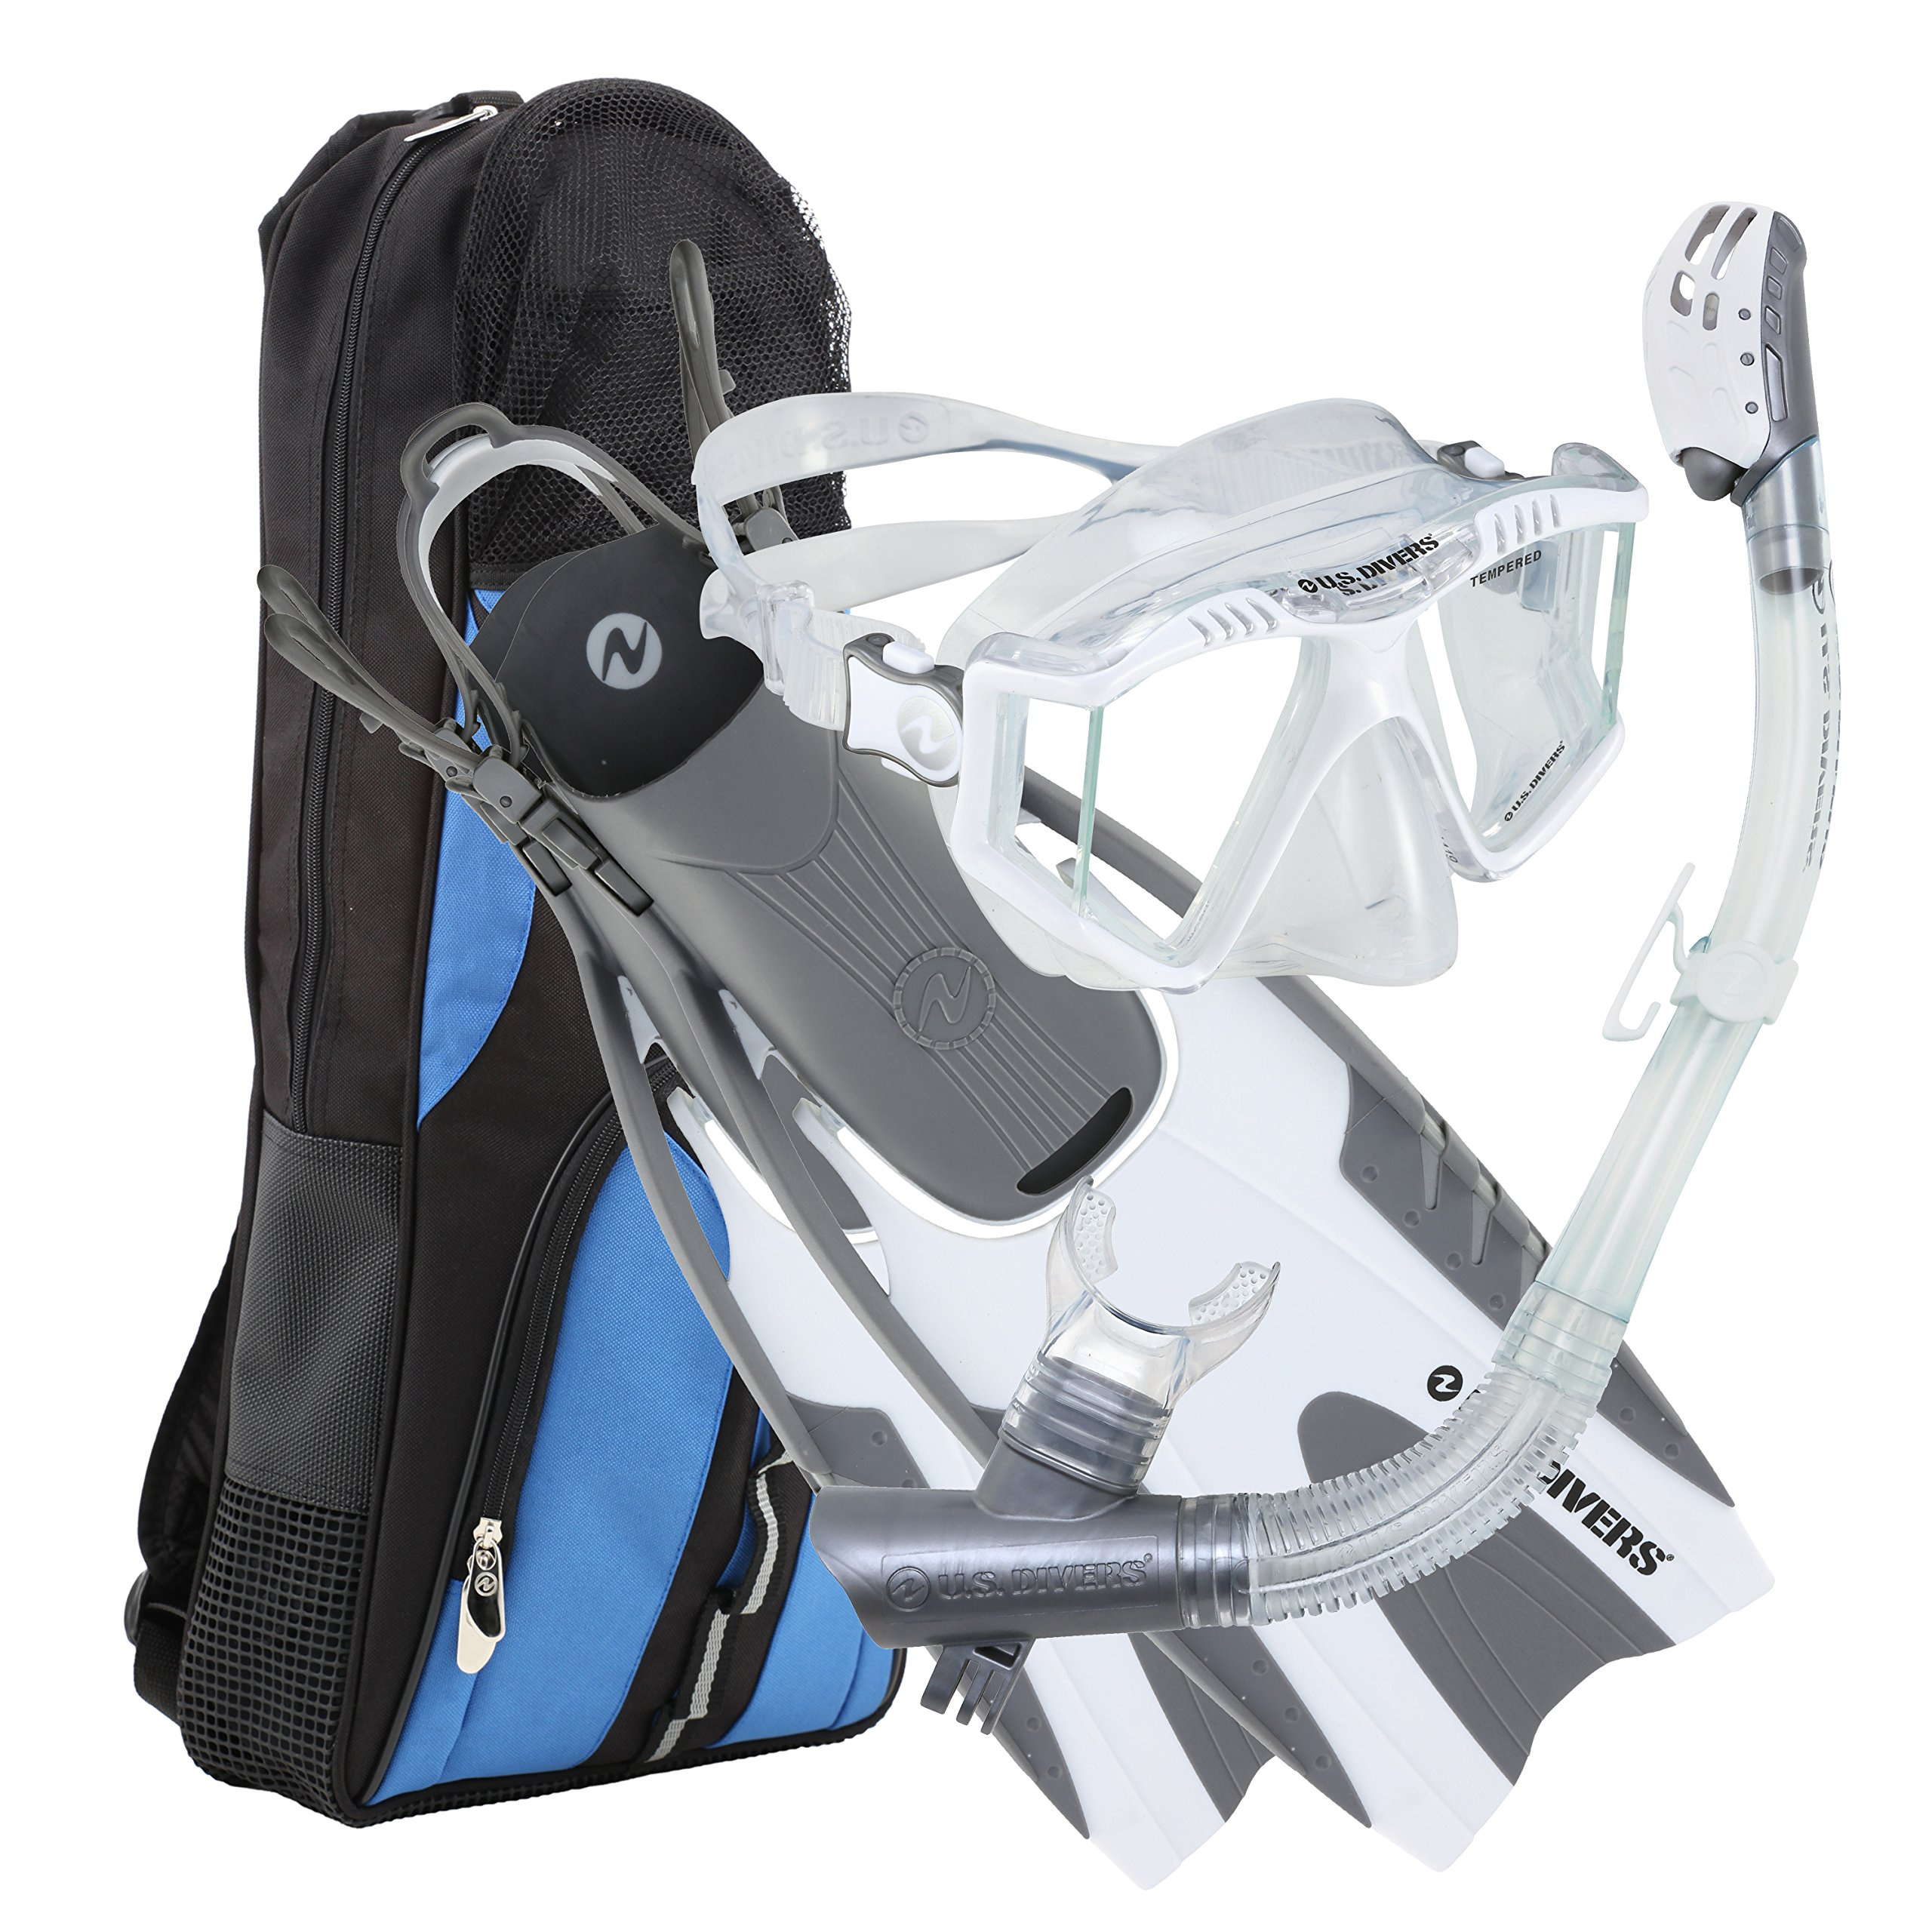 U.S. Divers Lux Mask Fins Snorkel Set Compatible with GoPro, White, Large/X-Large by U.S. Divers